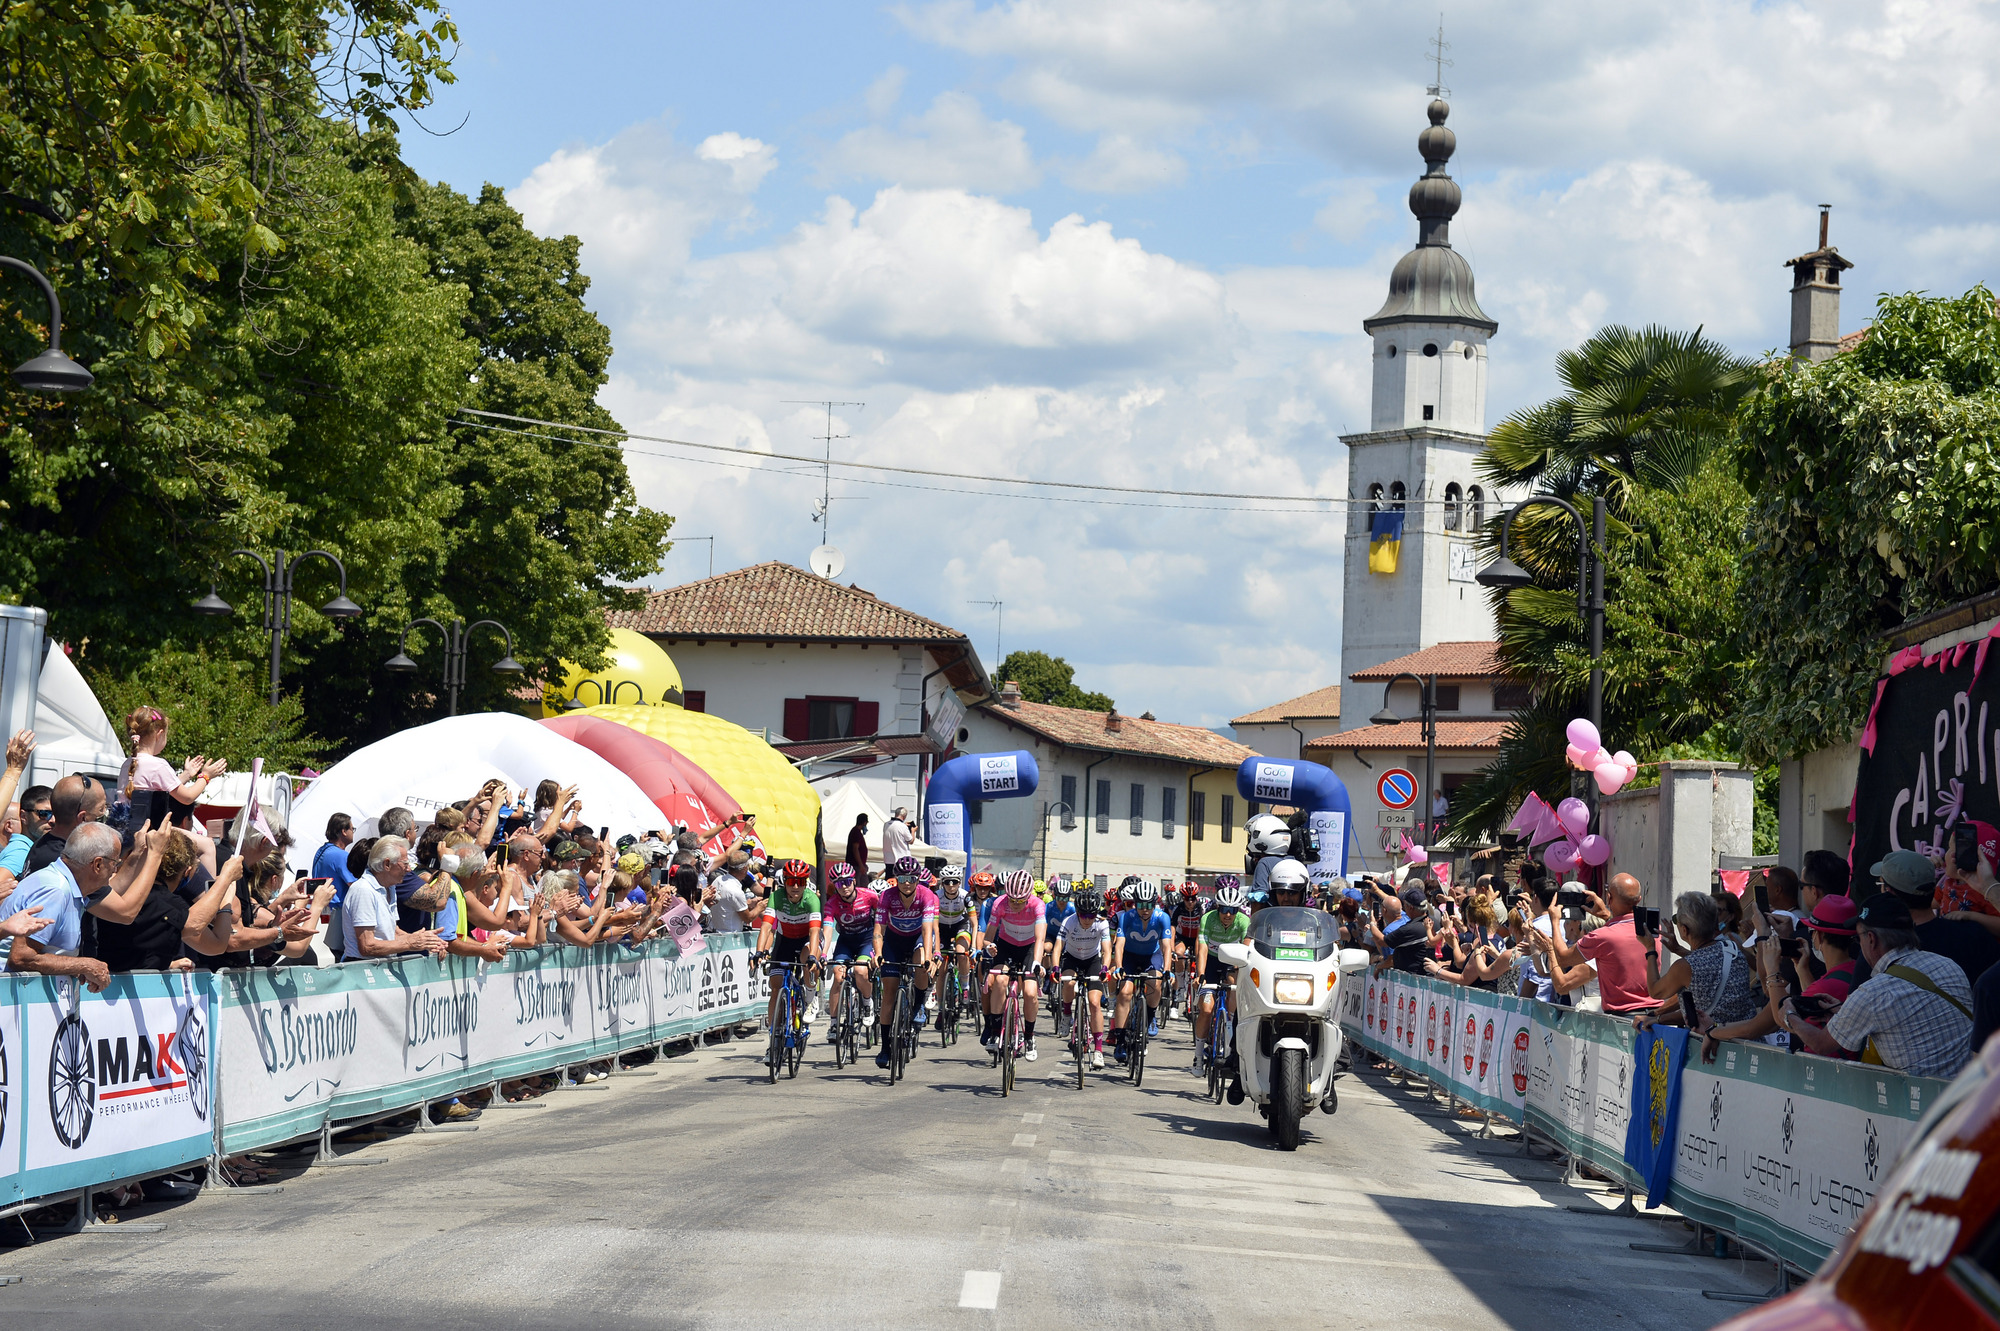 https://www.giroditaliadonne.it/2021/07/11/the-giro-ditalia-donne-concludes-with-the-tenth-and-last-stage-capriva-del-friuli-cormons/